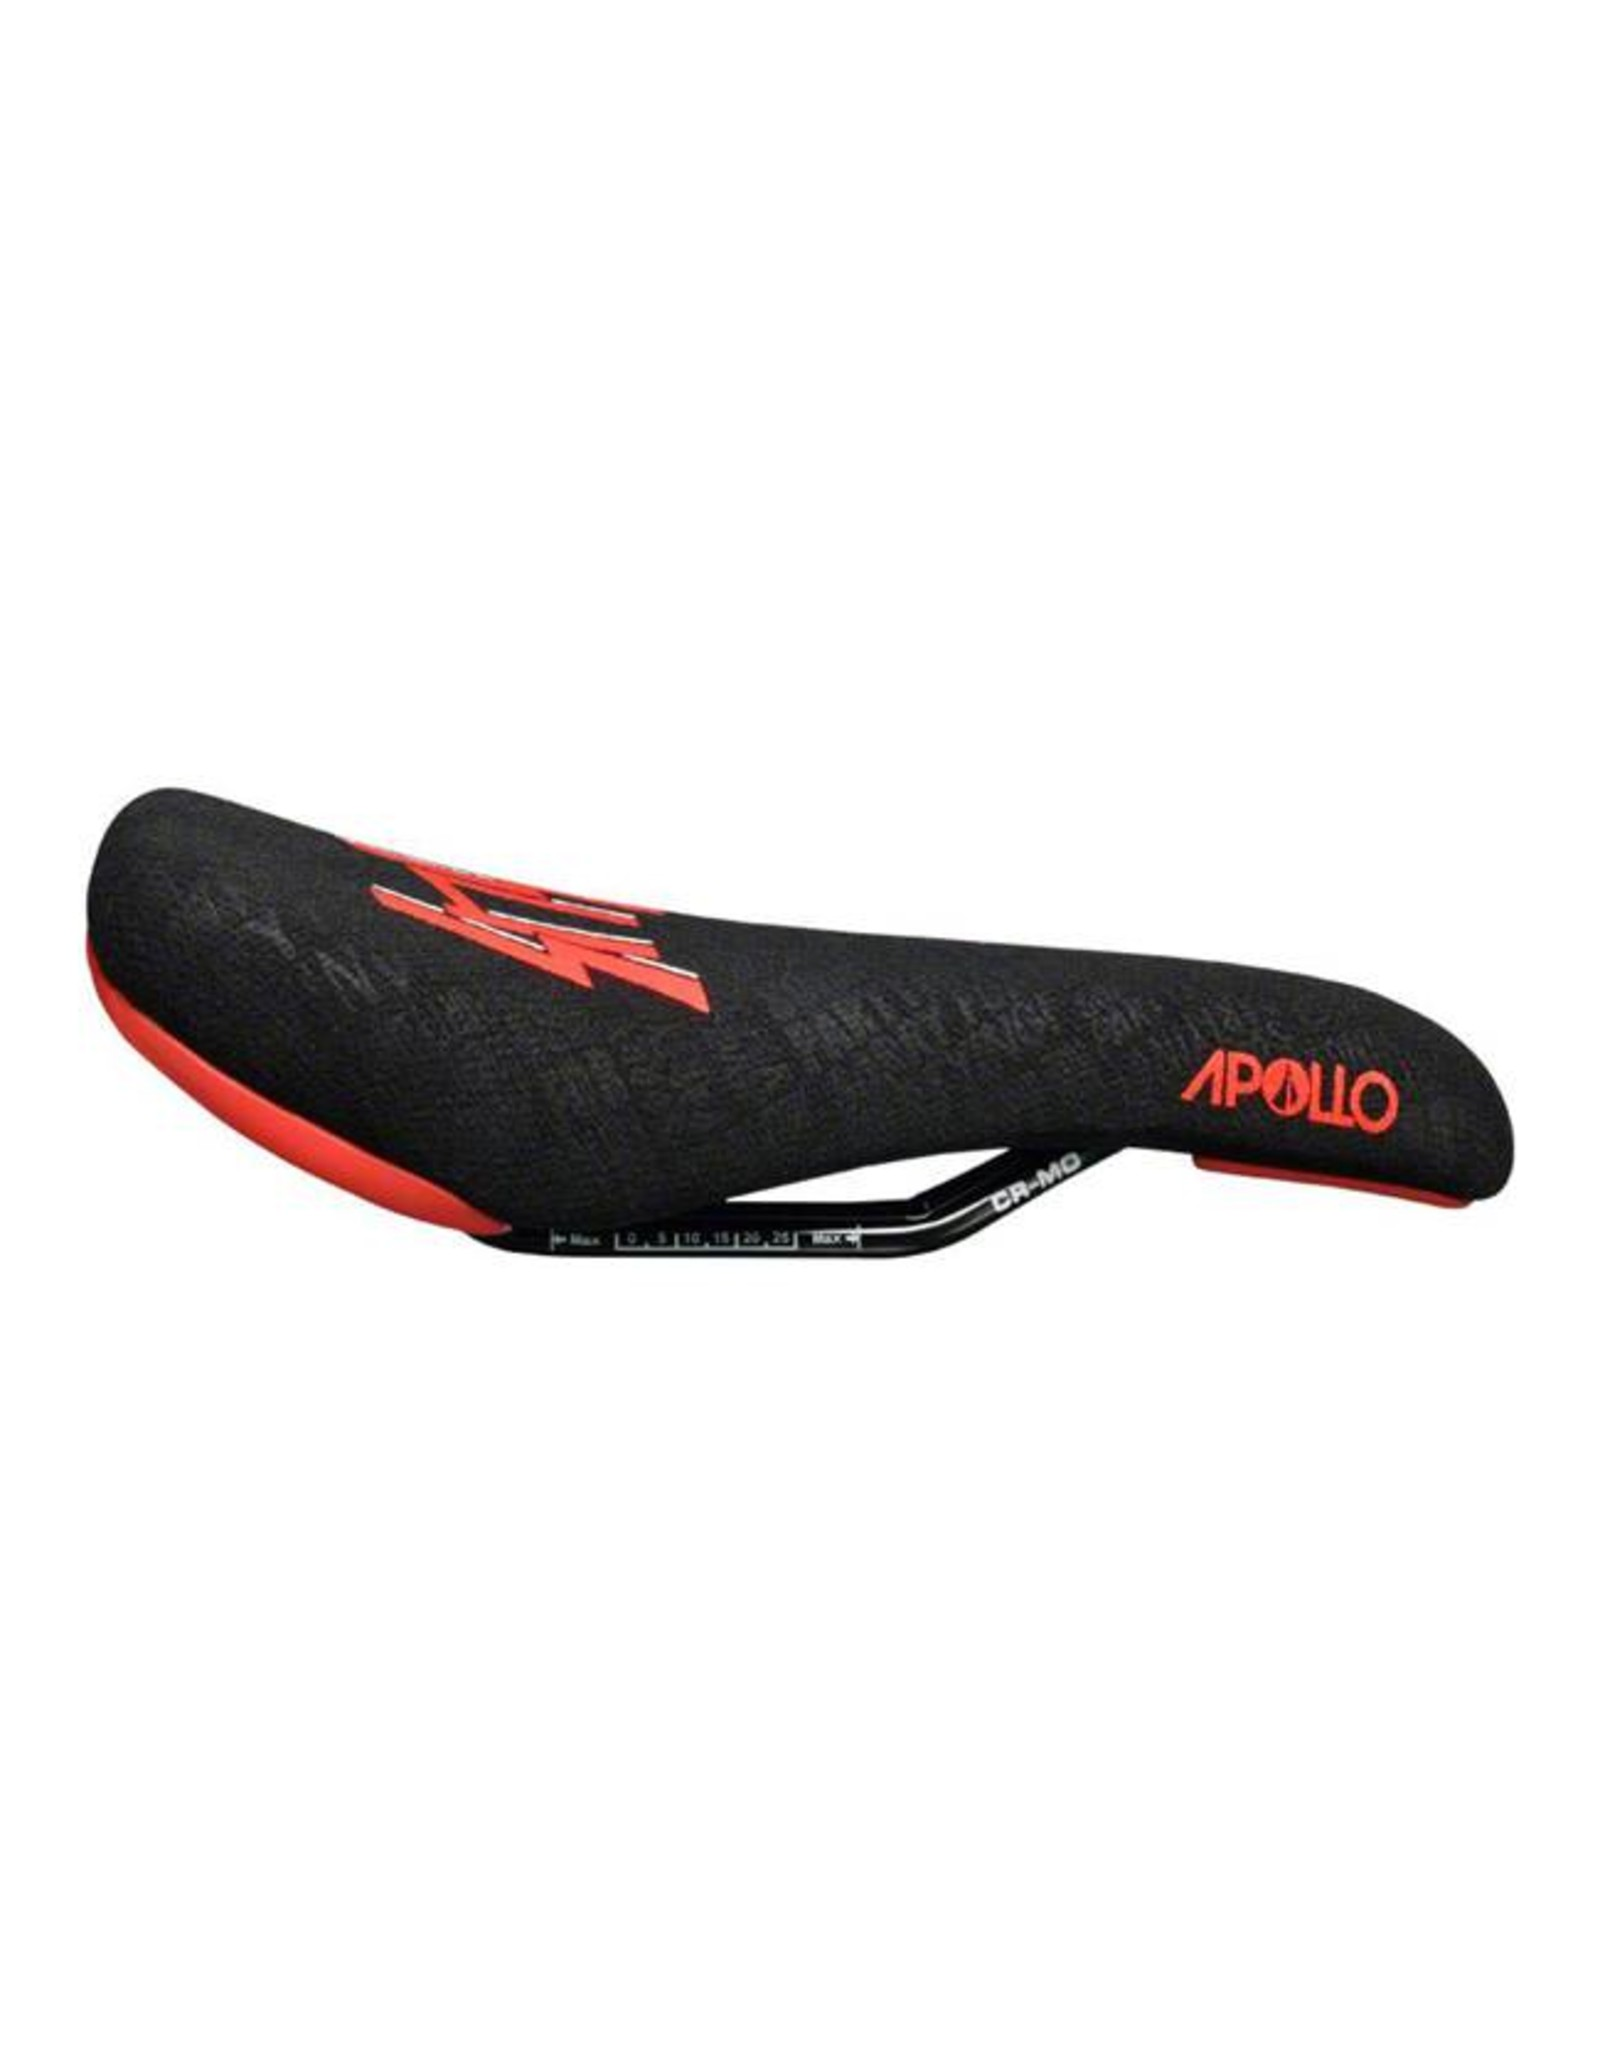 SDG SDG Apollo Sensus Saddle: Chromoly Rails, 1pc Black Aramid Embossed Cover with Red Sensus Logo and Colored Bumpers